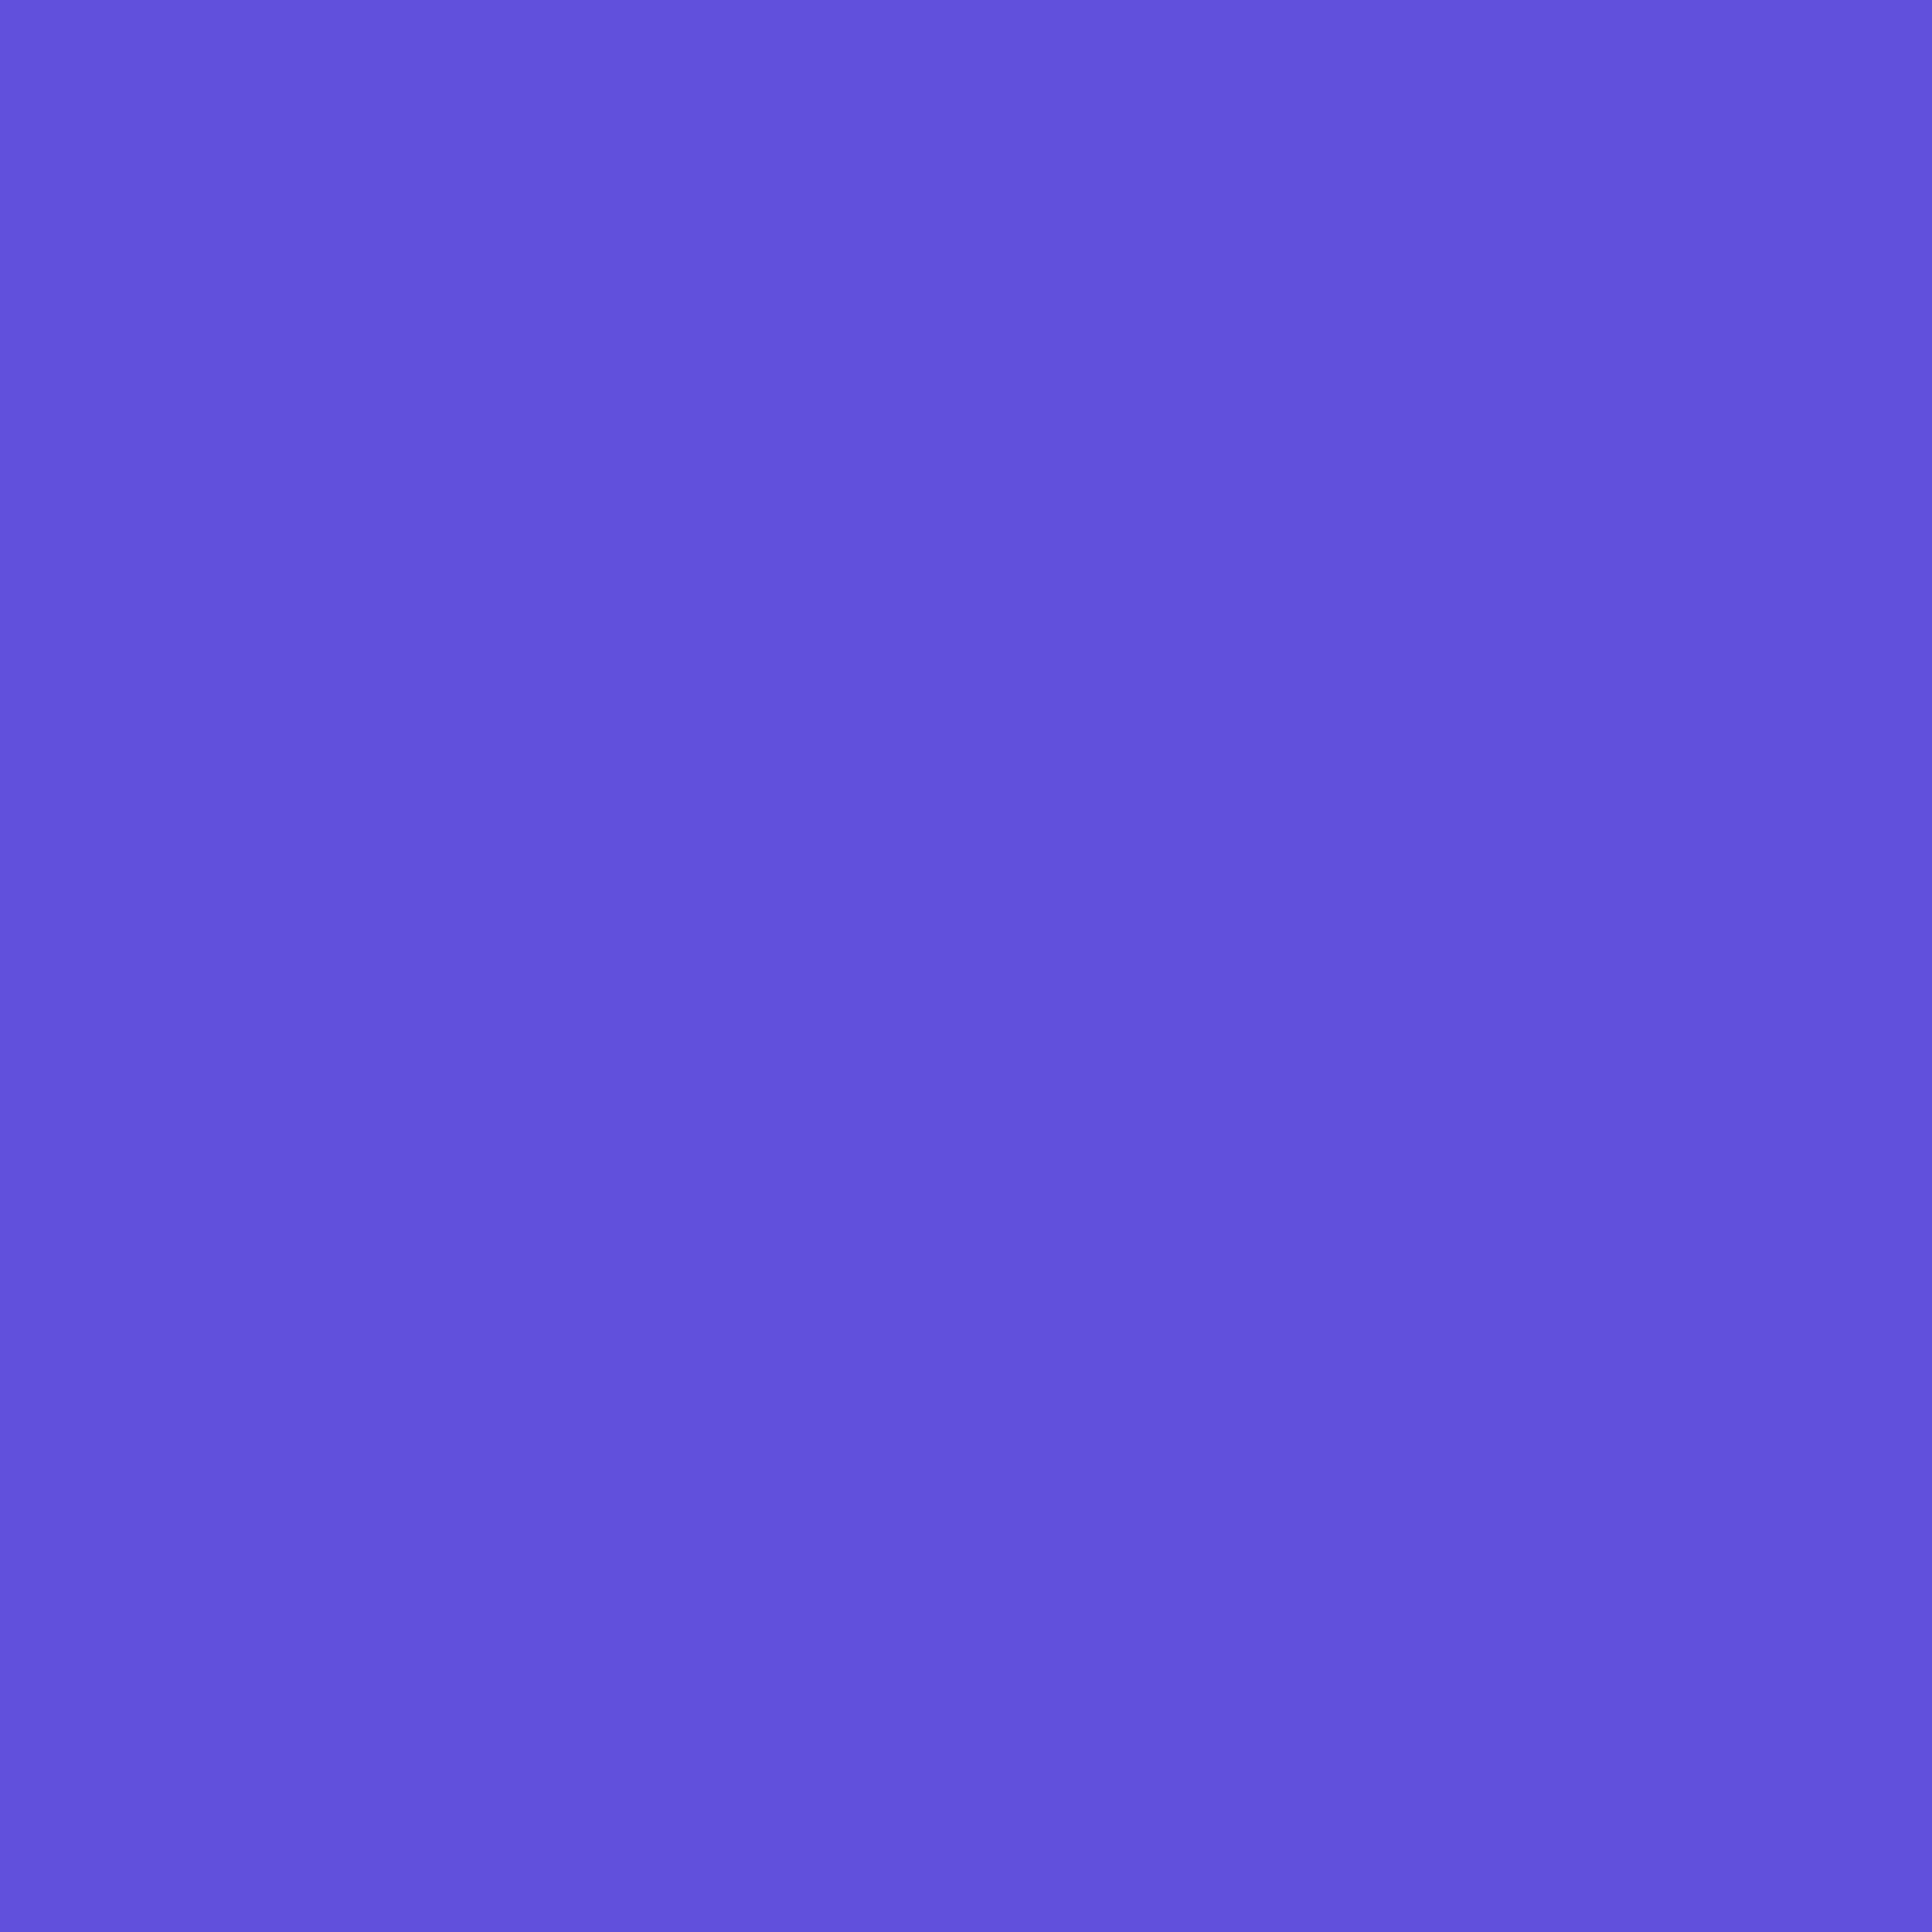 2732x2732 Majorelle Blue Solid Color Background